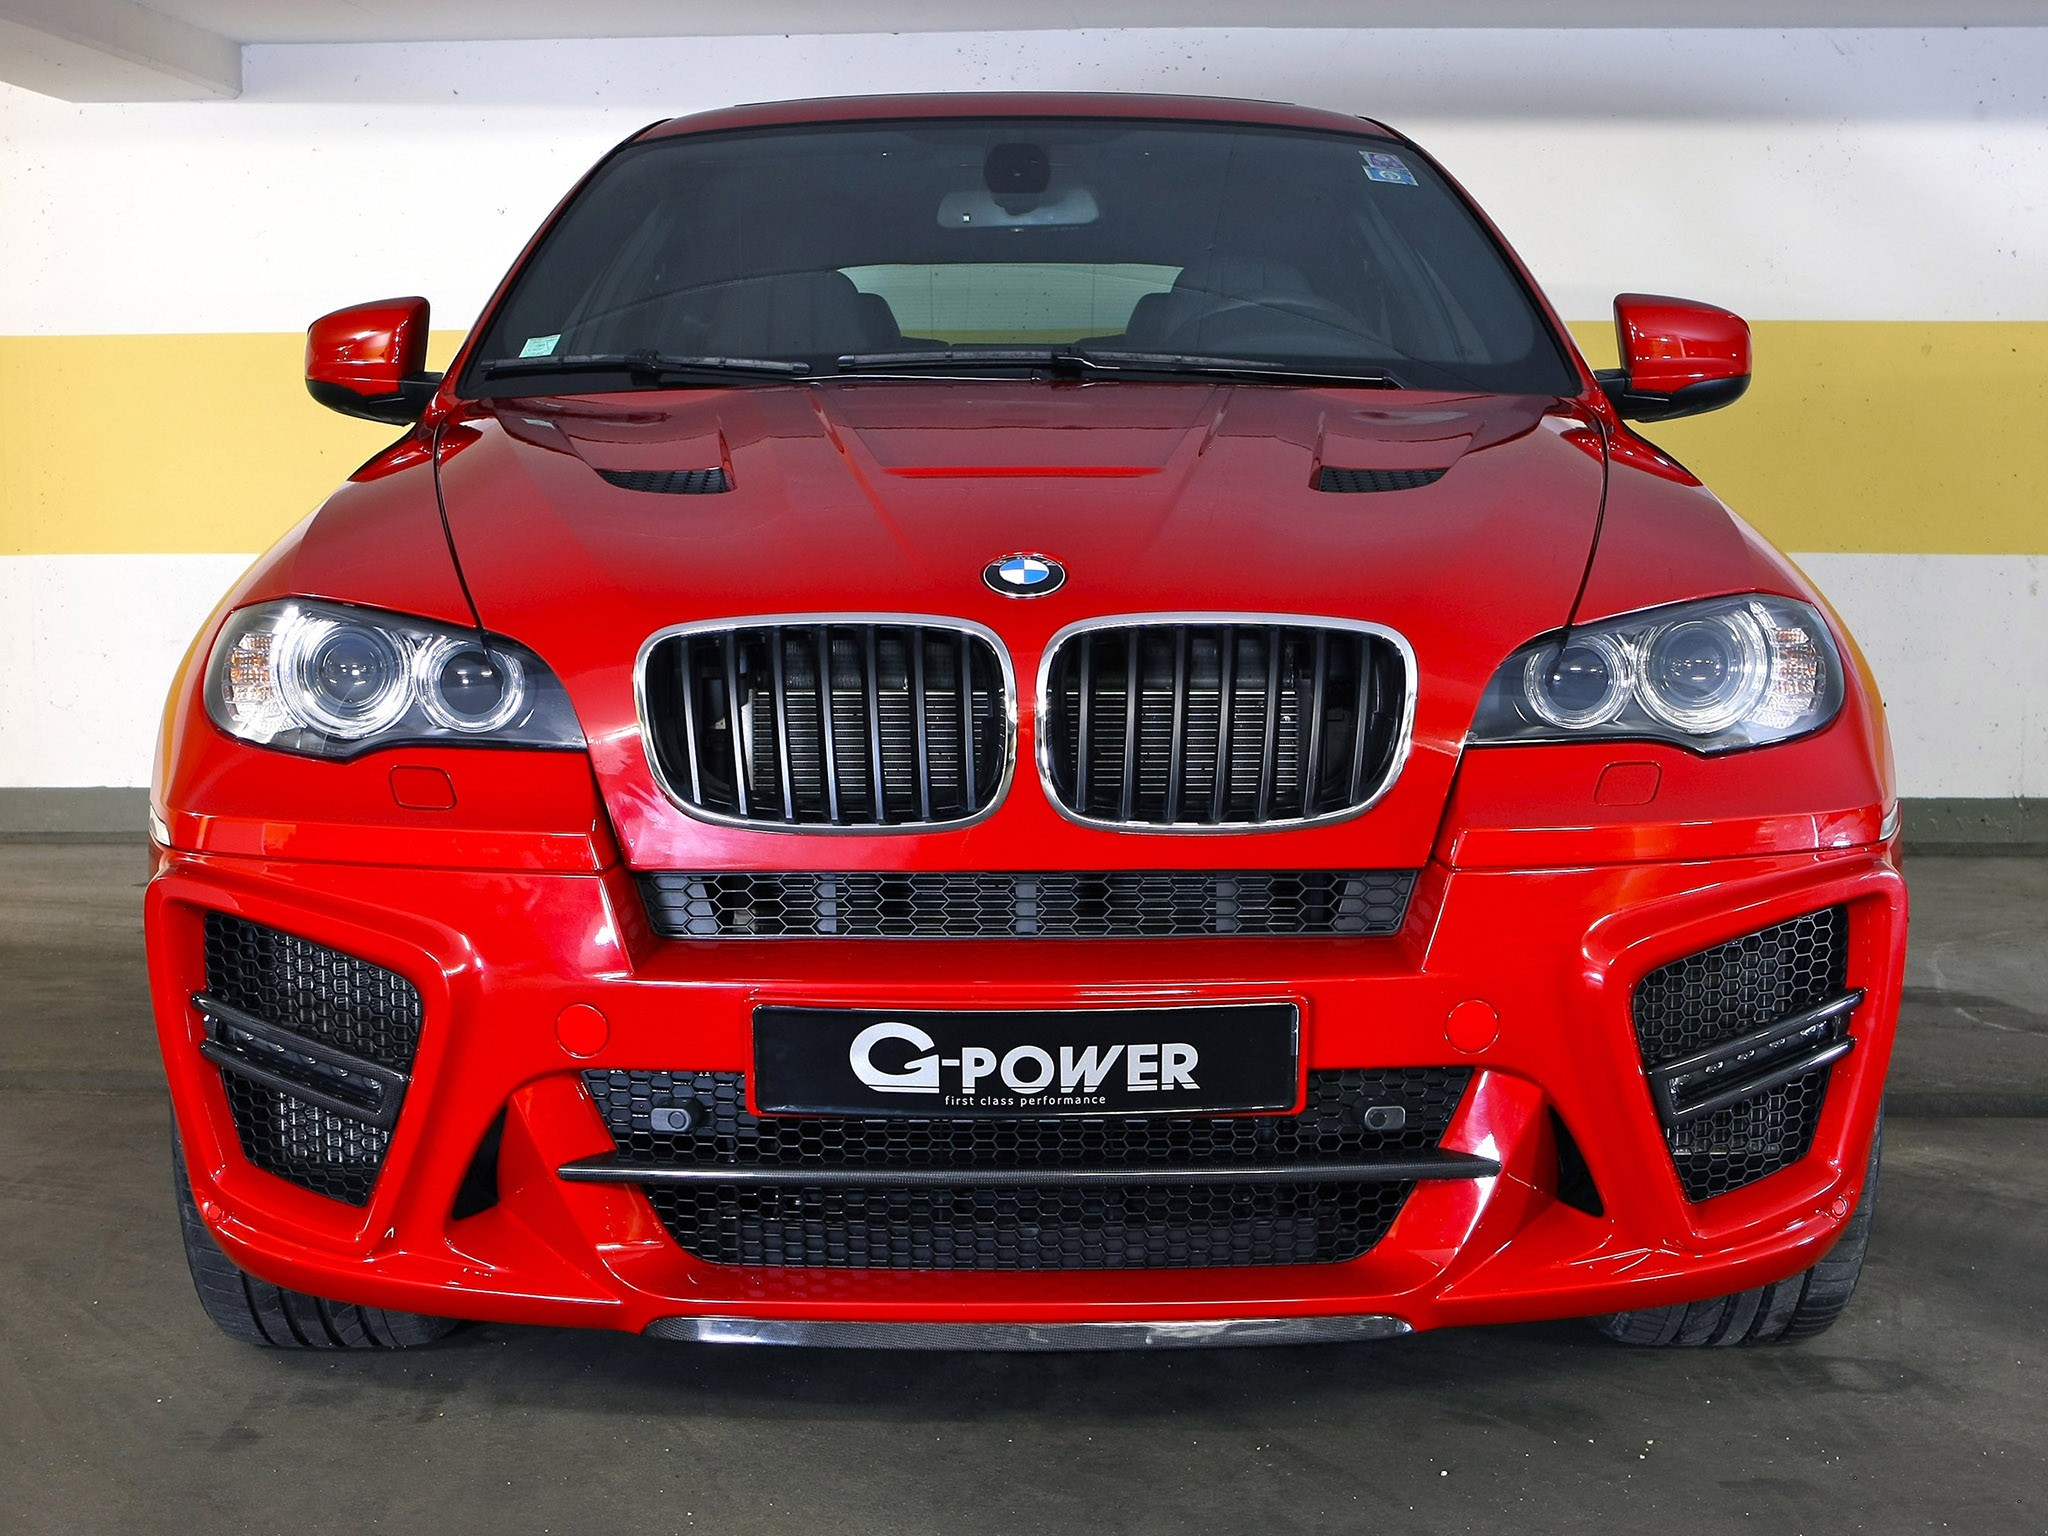 2011 G-power - Bmw X6 M Typhoon S